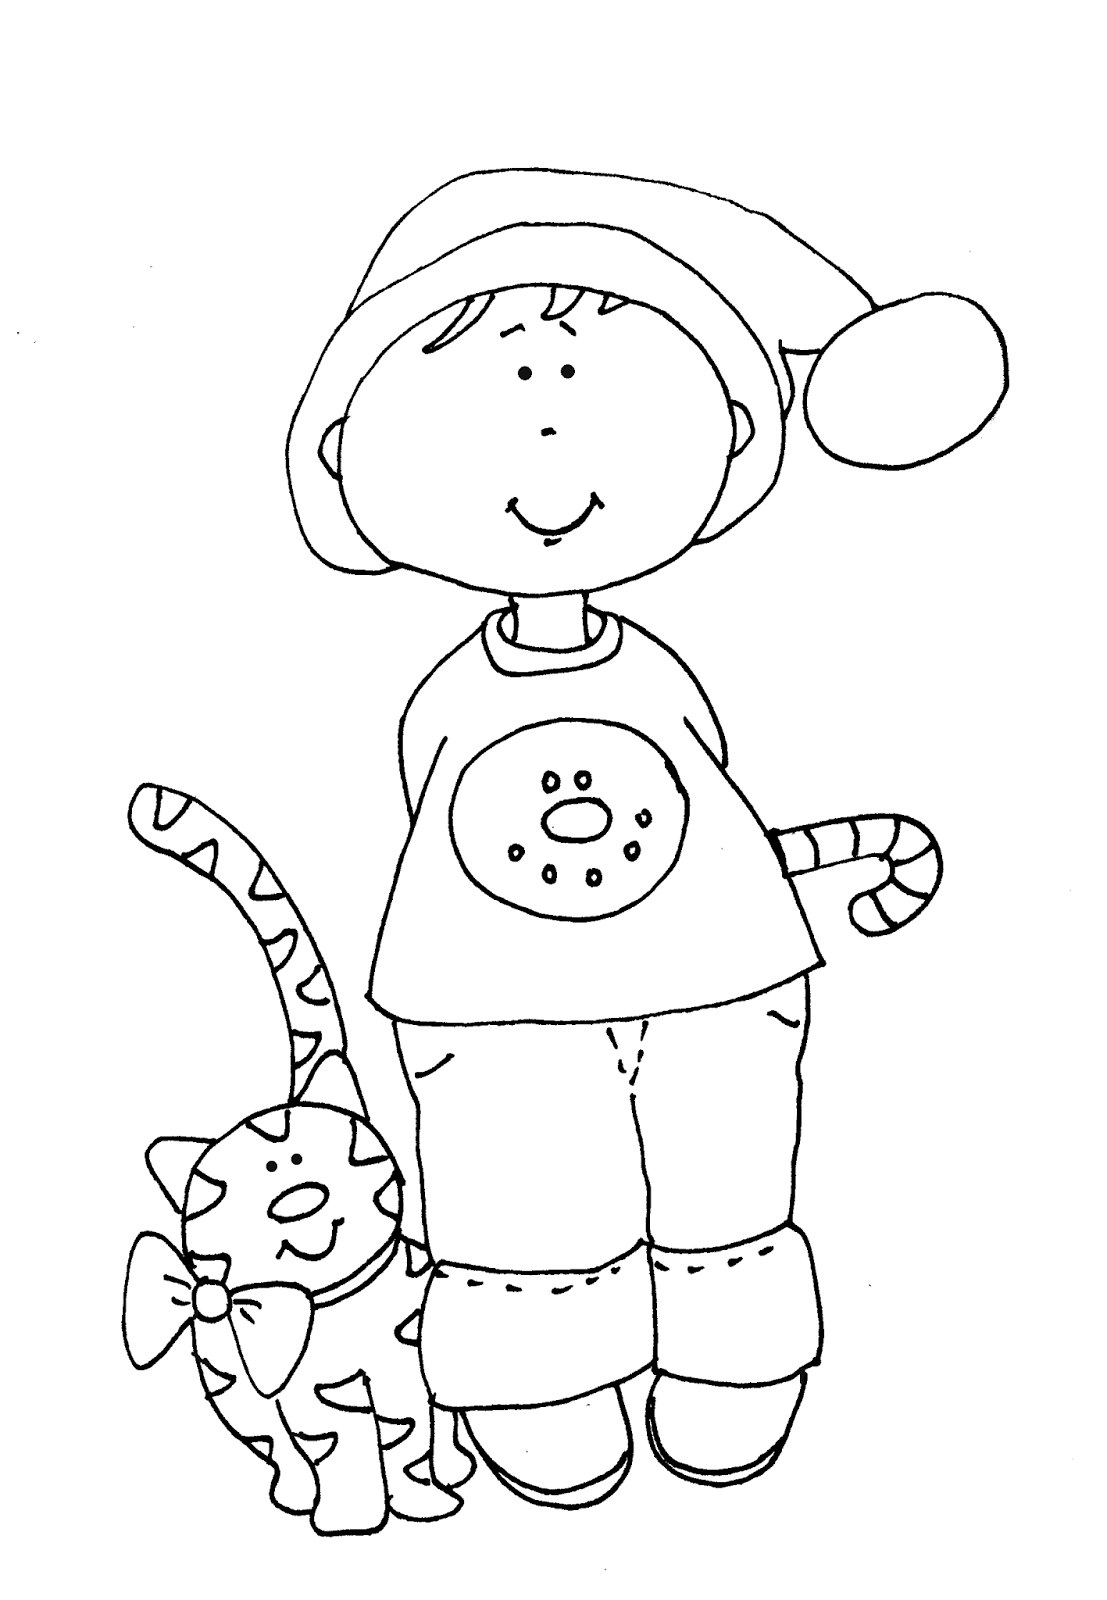 Free Dearie Dolls Digi Stamps Candy Cane Boy With Cat